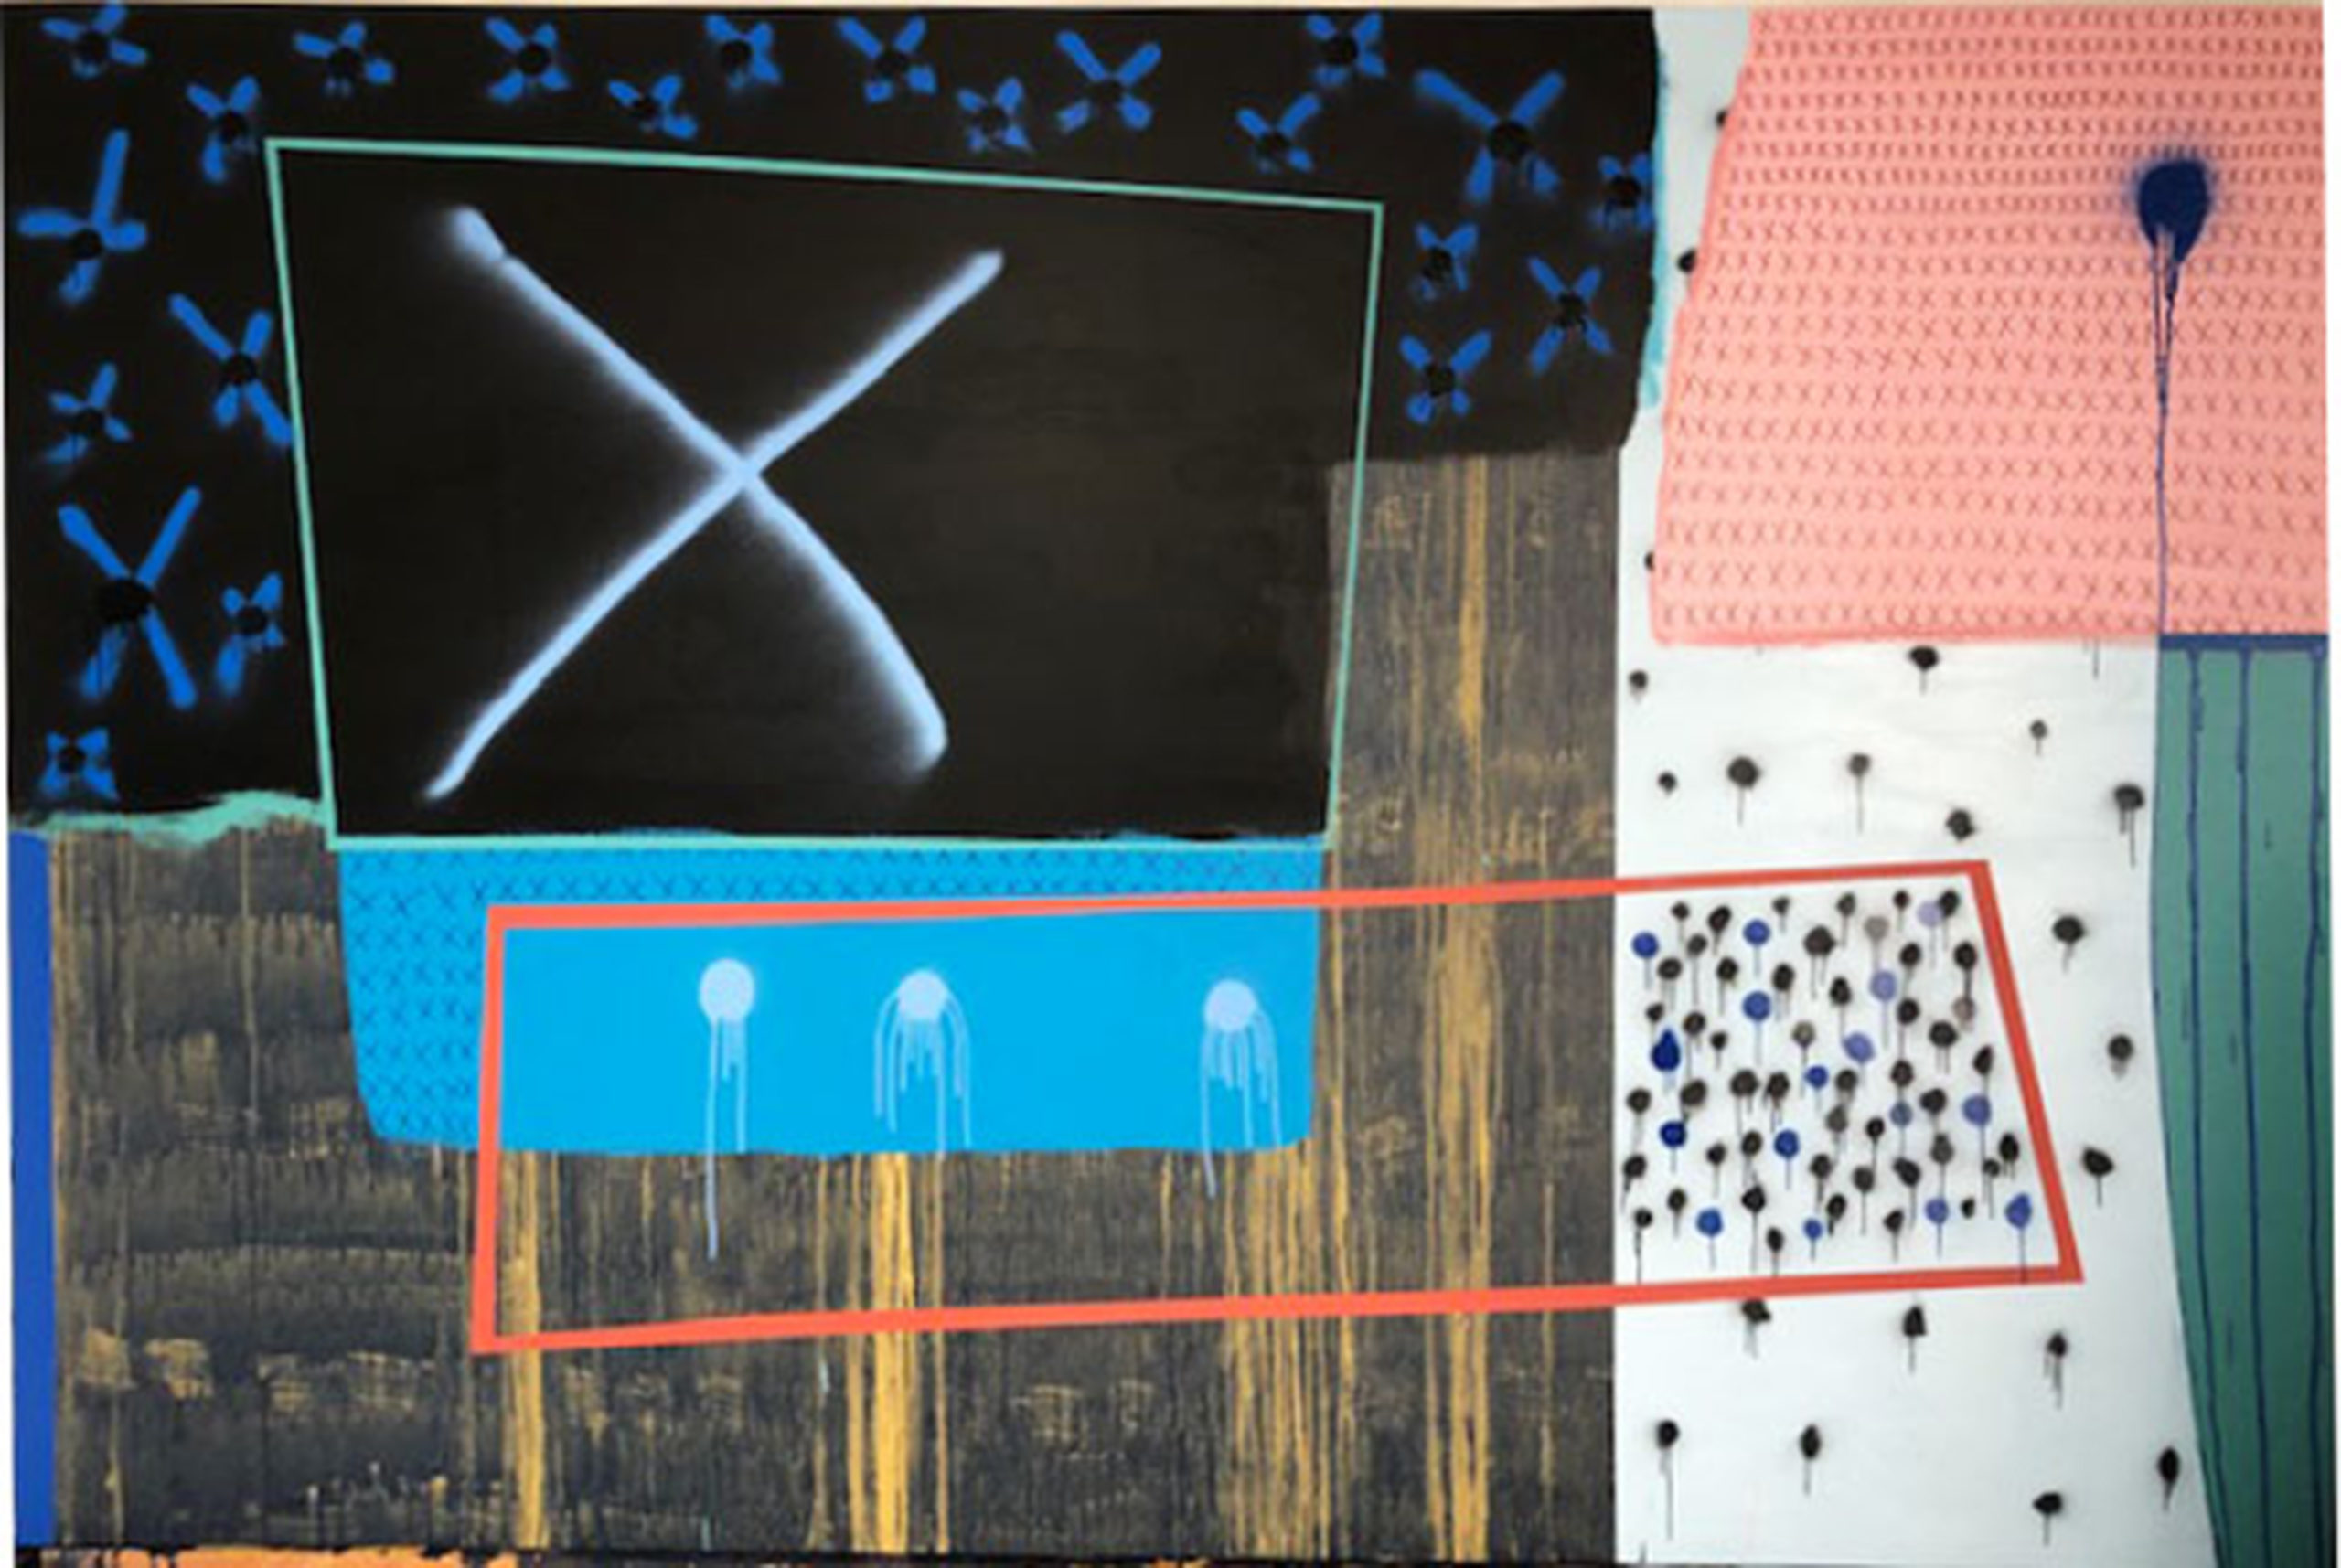 This painting by Holly Tempo features various blocky shapes, colors and textures. The left side of the painting predominately has darker colors, such as black, blue, brown and orange, making up rectangular shapes. One of the rectangular shapes has an X shape inside of it. The right side of the painting predominately has lighter colors, such as white and pink, with variations in shape including smaller X's and and circles.